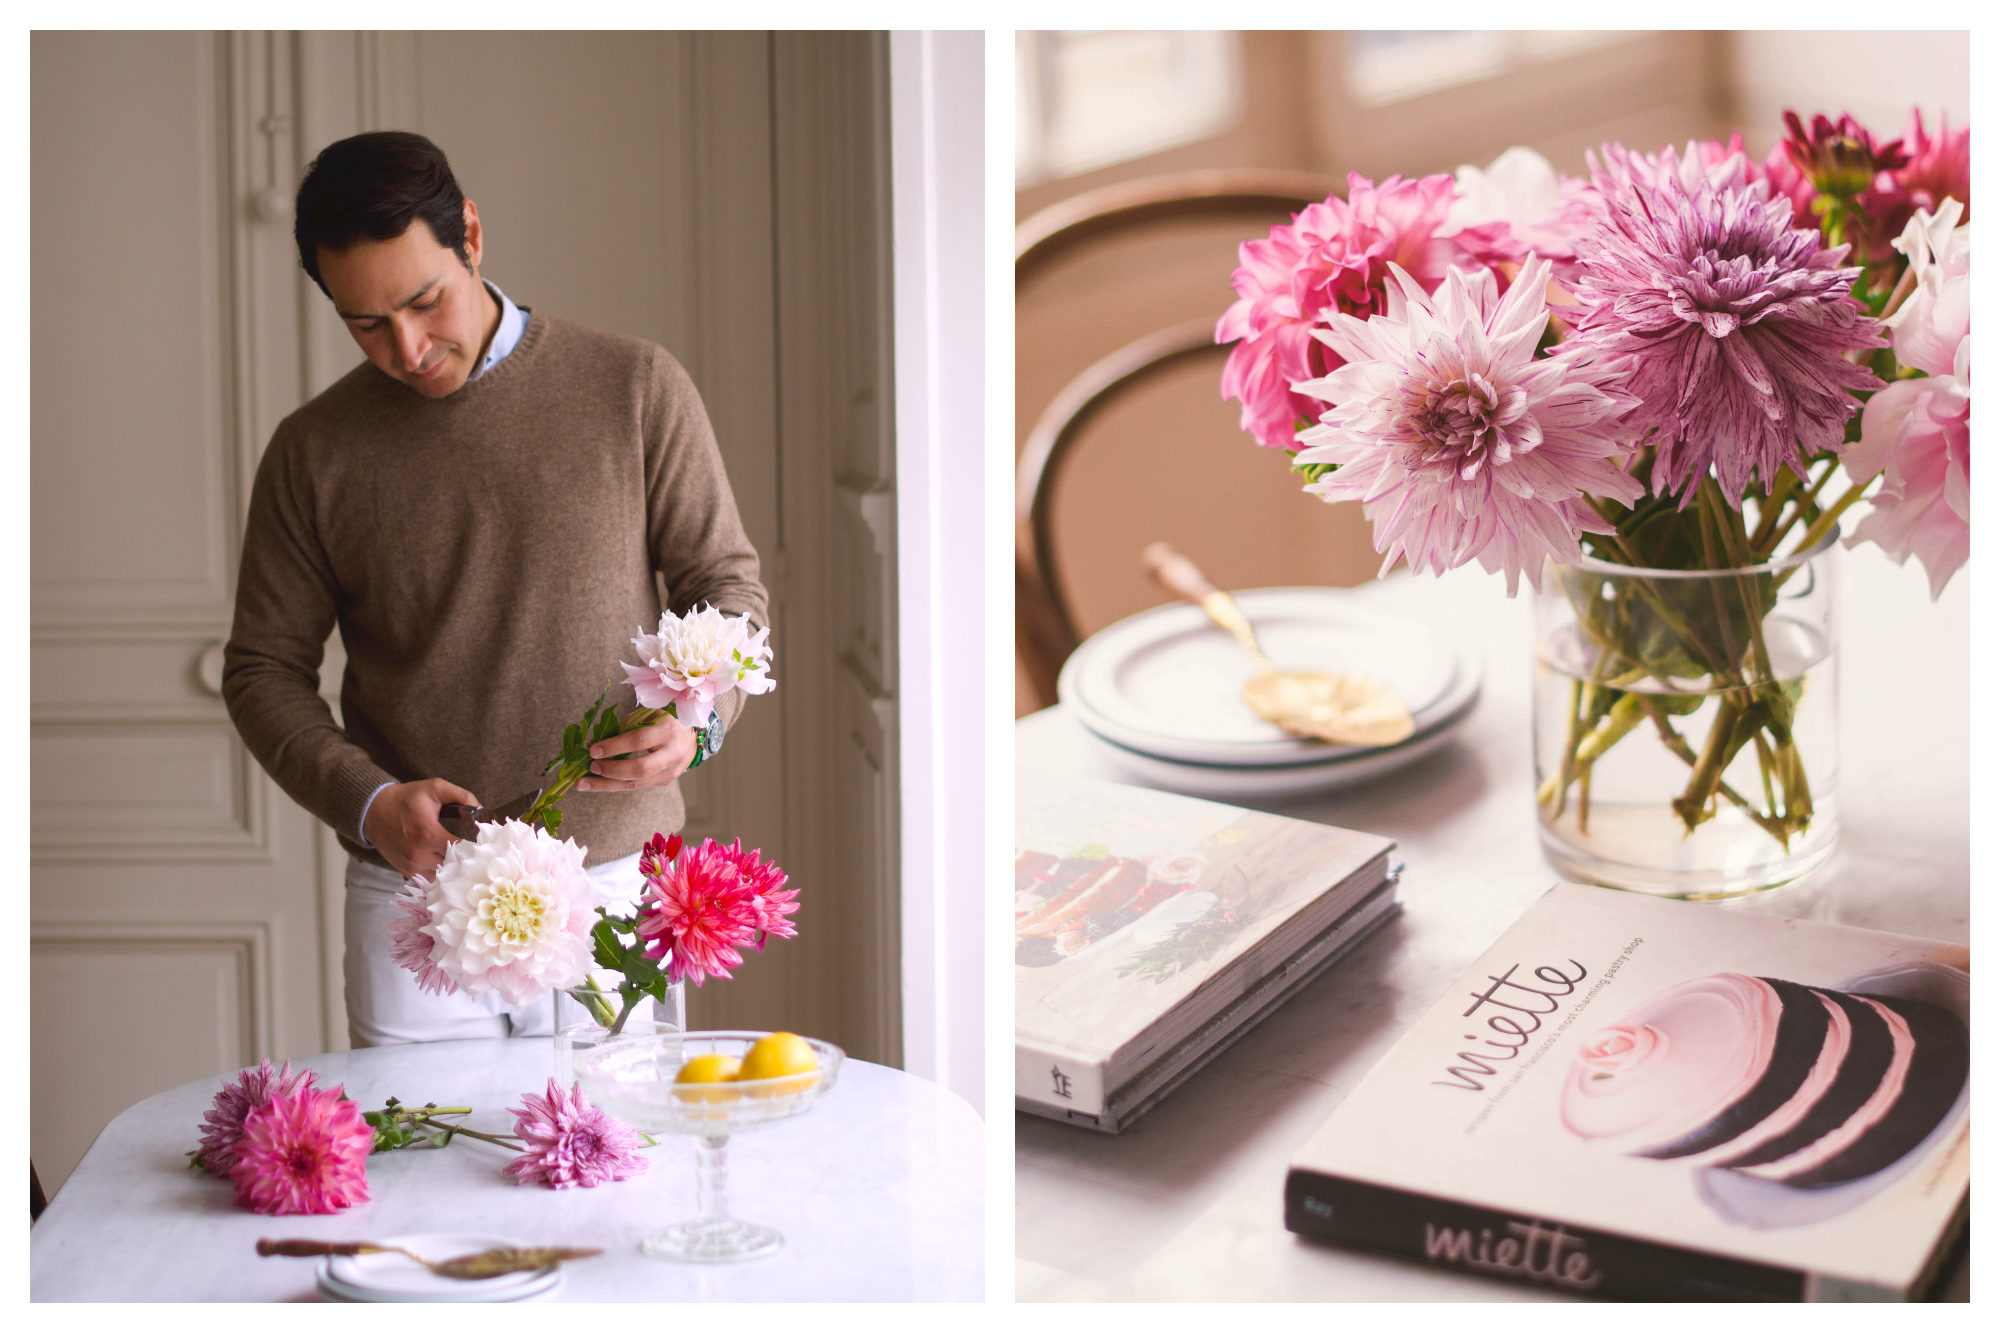 Franck arranging pink dahlia flowers in his Paris apartment (left). A vase of delicate pink and purple dahlias on a table next to Frank's favorite cookbooks (right).